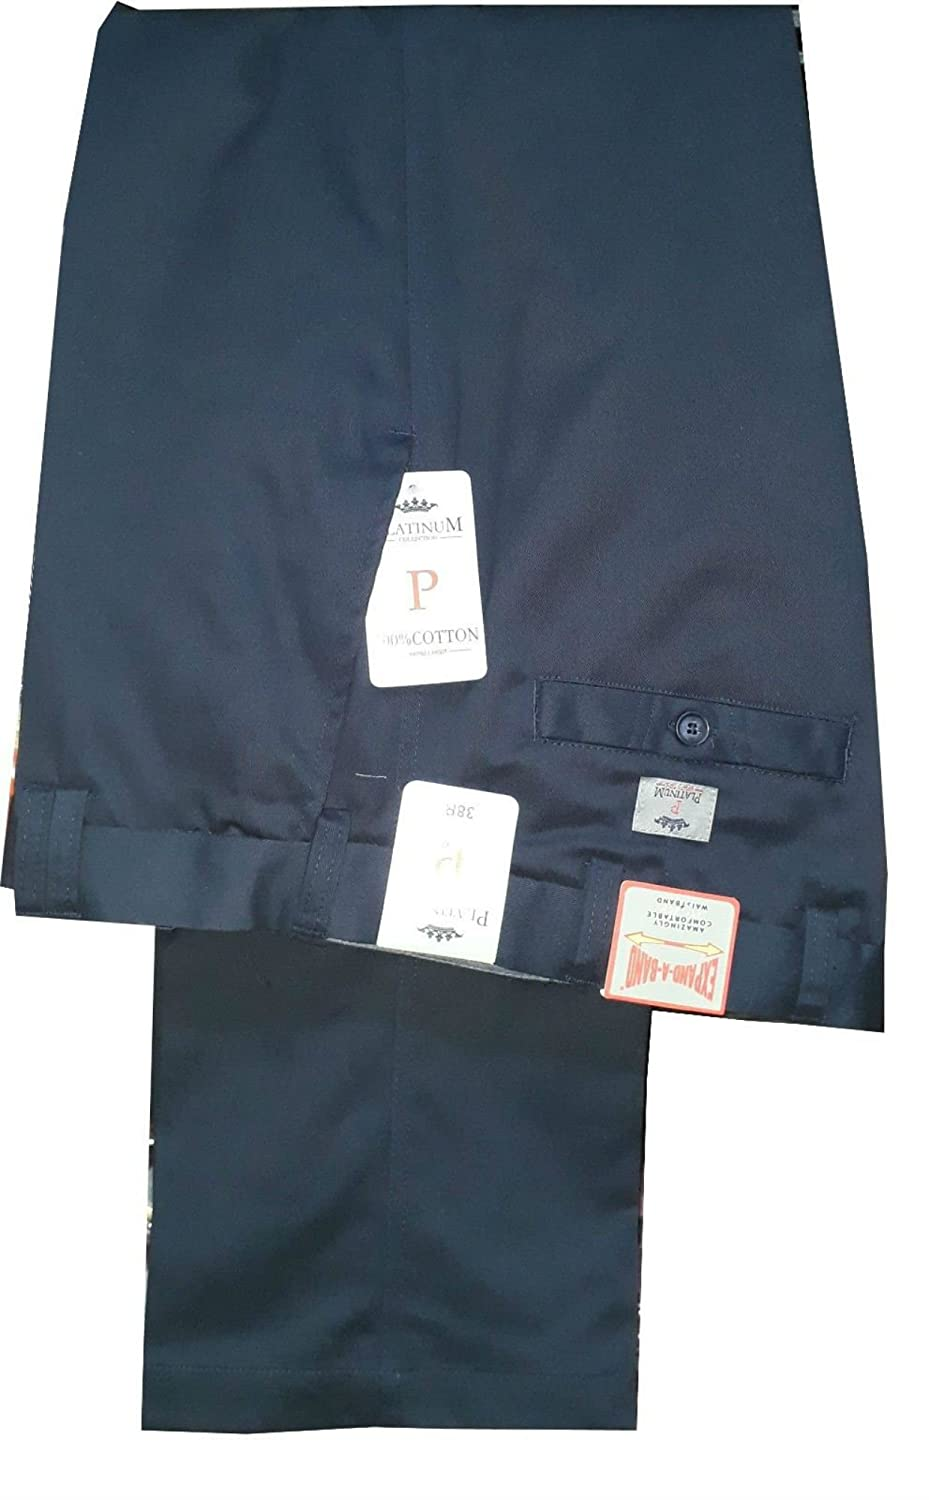 Carabou Mens Summer Chino Cotton Flexible Self Side Adjusting Expandable Waist Trousers Pants W32 to54 Length 29 /&31